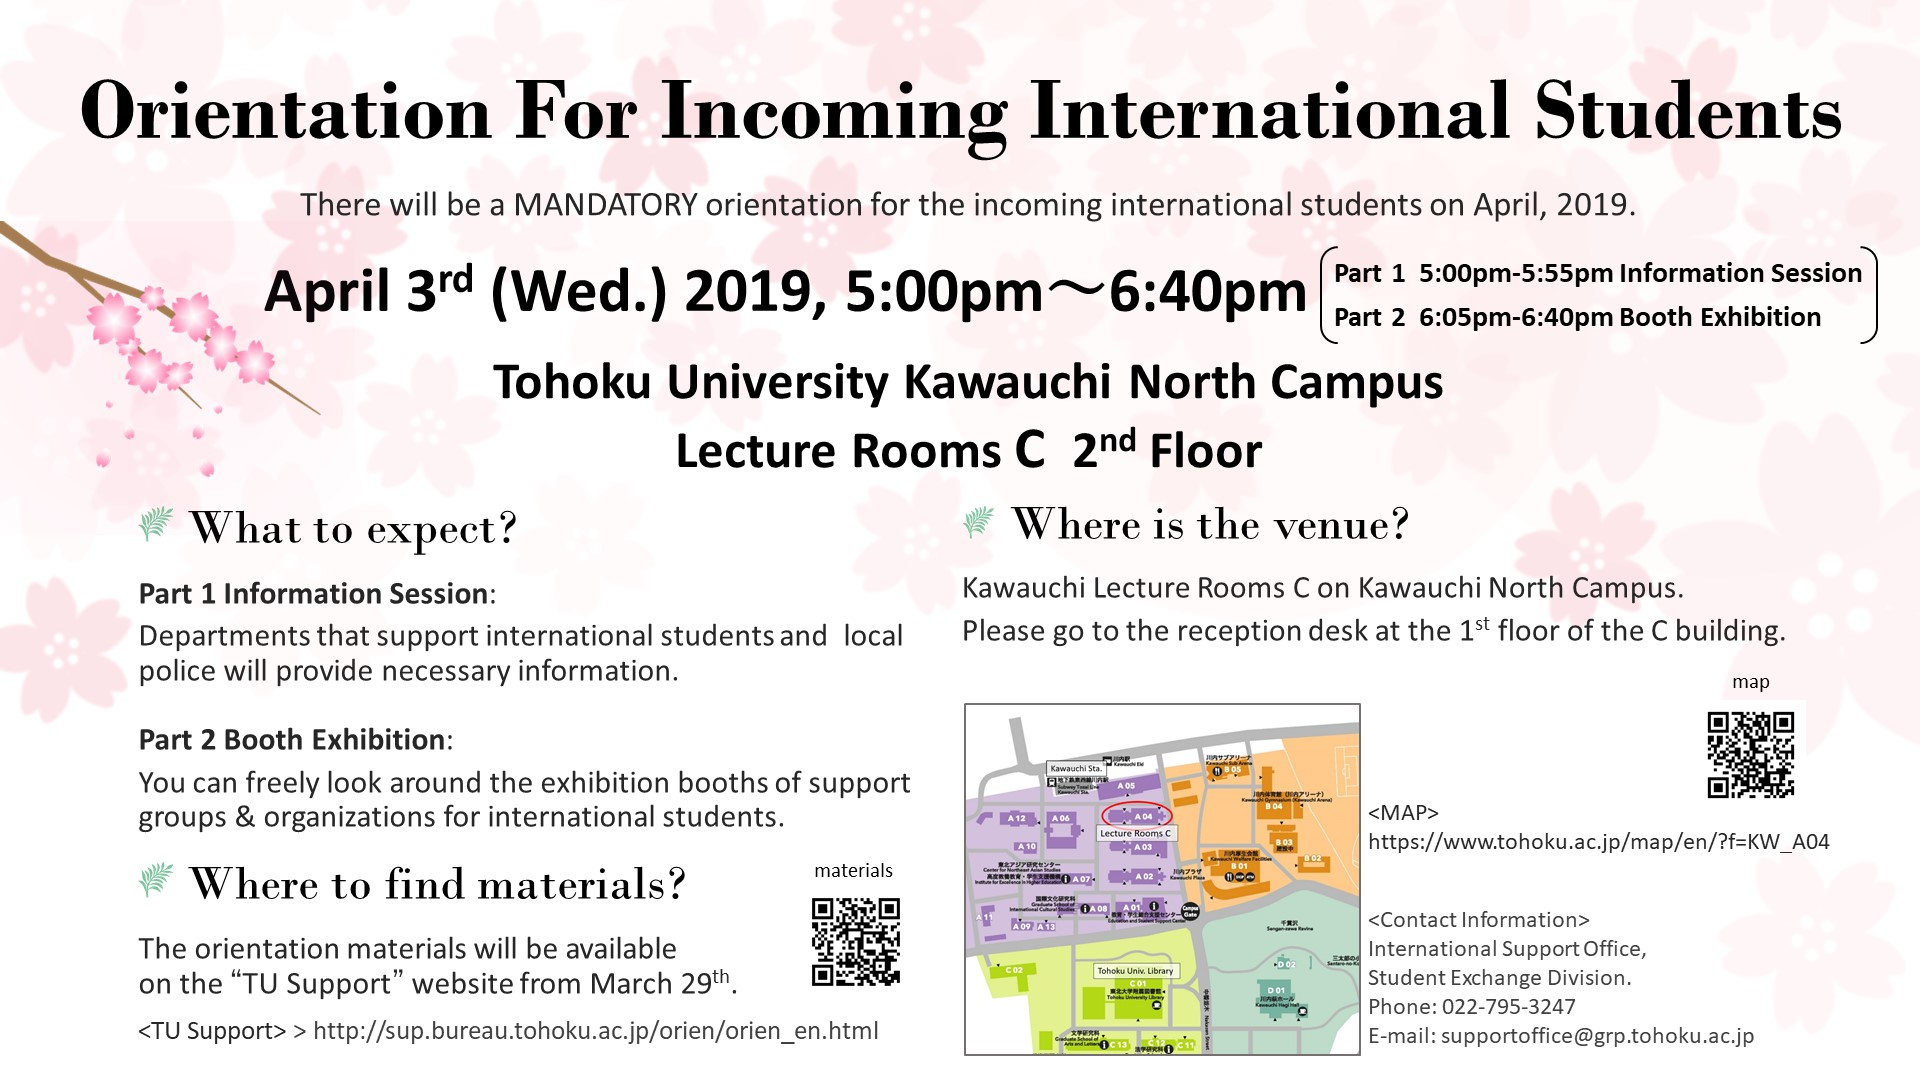 Apr  3 (Wed) Orientation for Incoming International Students